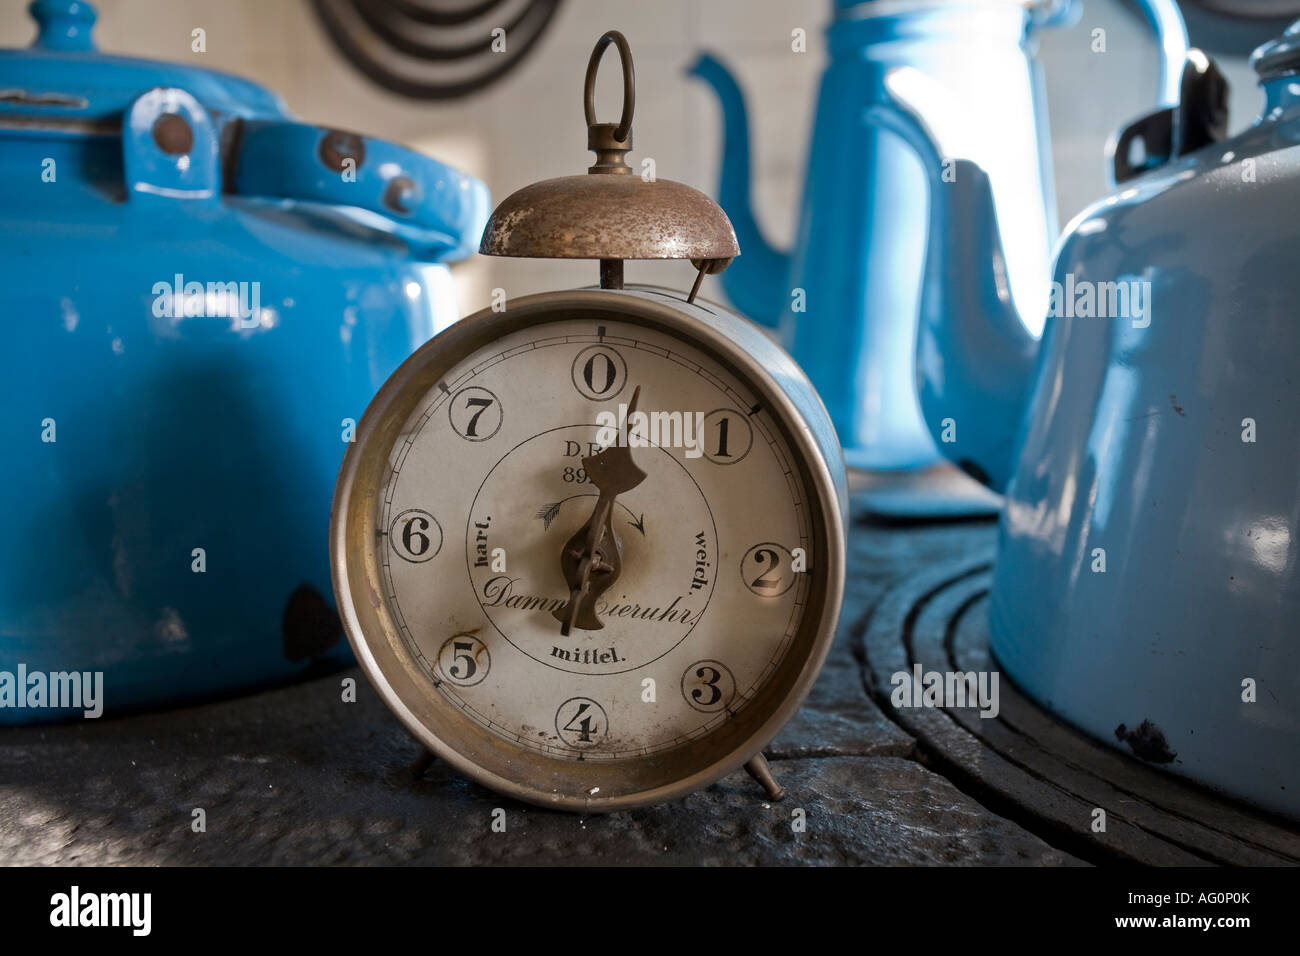 Time for Tea An old antique kitchen timer with a bell on top on a coal stove surrounded by blue kettles Juelsberg - Stock Image